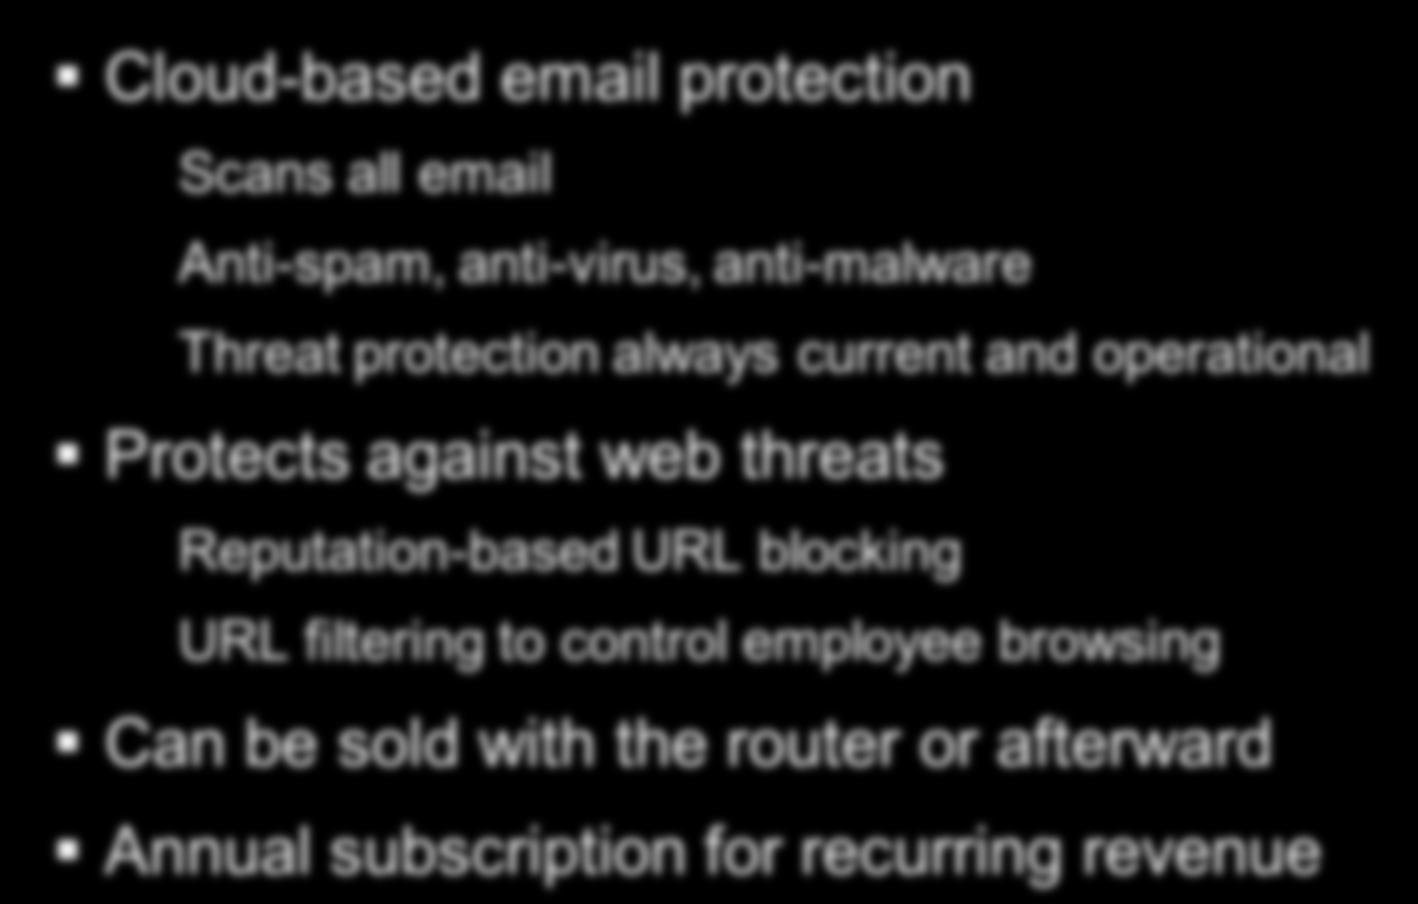 Trend Micro ProtectLink Gateway Full-strength email and web security Cloud-based email protection Scans all email Anti-spam, anti-virus, anti-malware Threat protection always current and